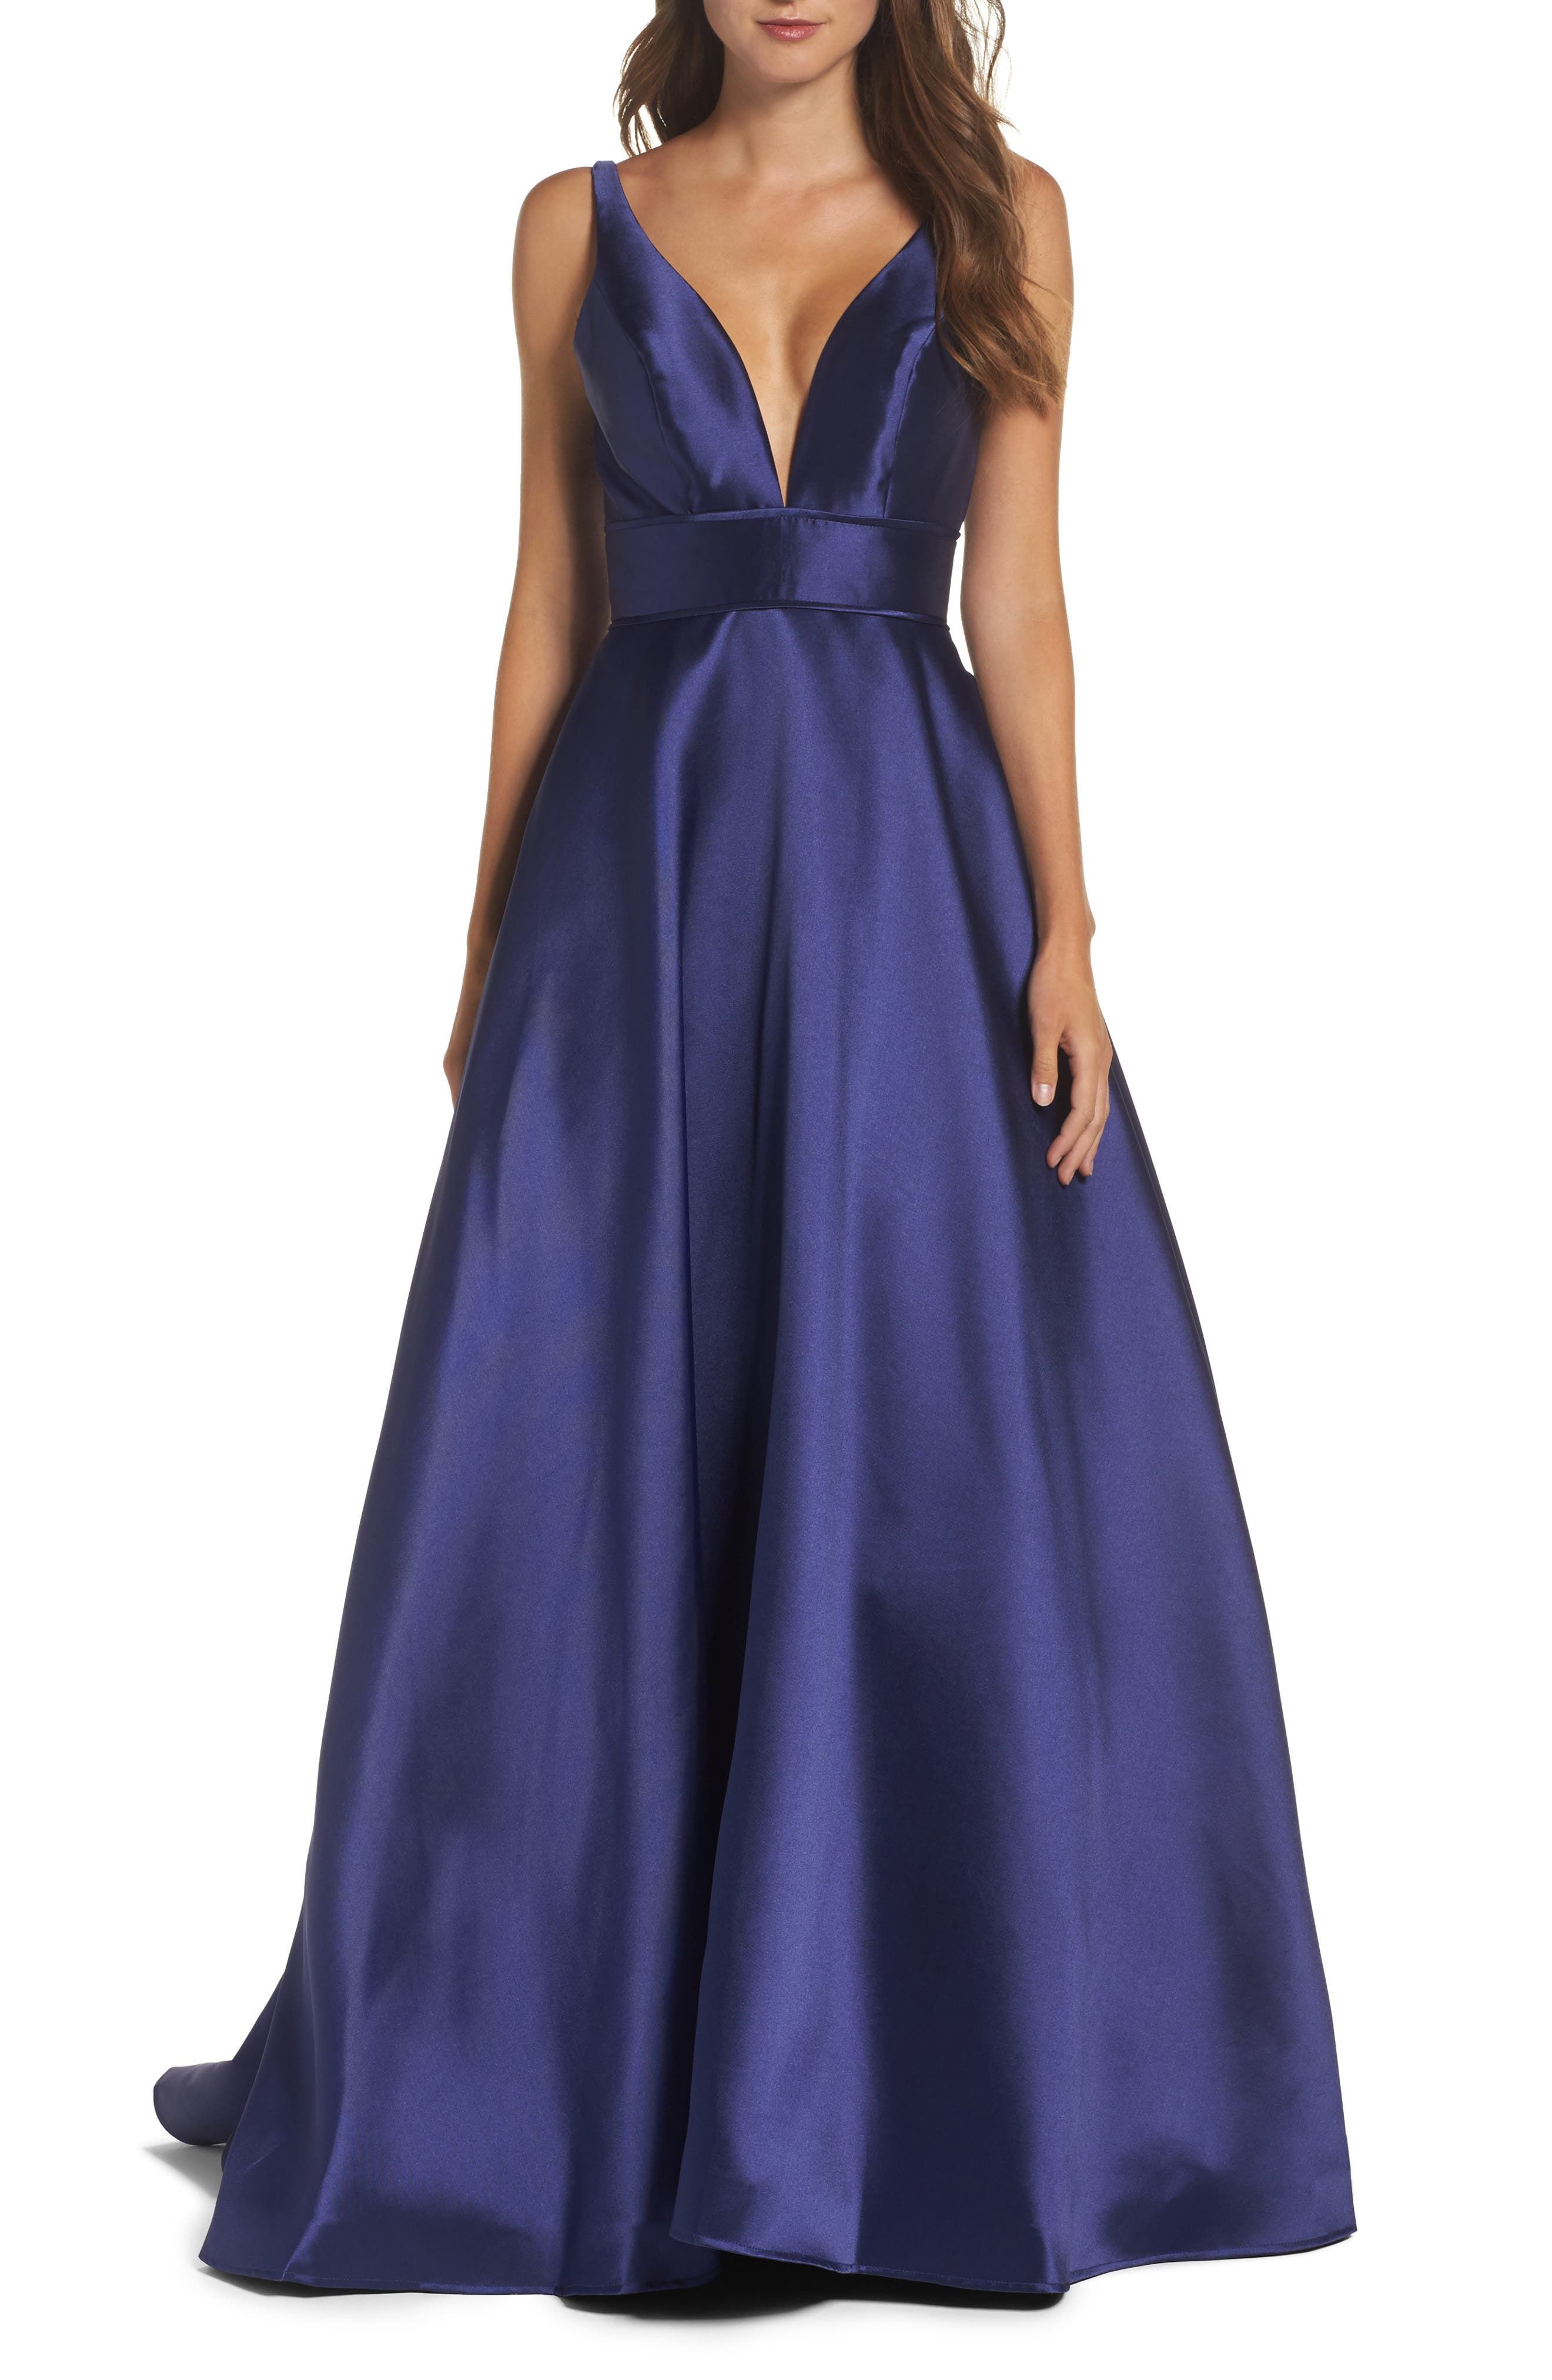 IEENA FOR MAC DUGGAL, Plunging Sweetheart Neck Ballgown, Main thumbnail 1, color, NAVY